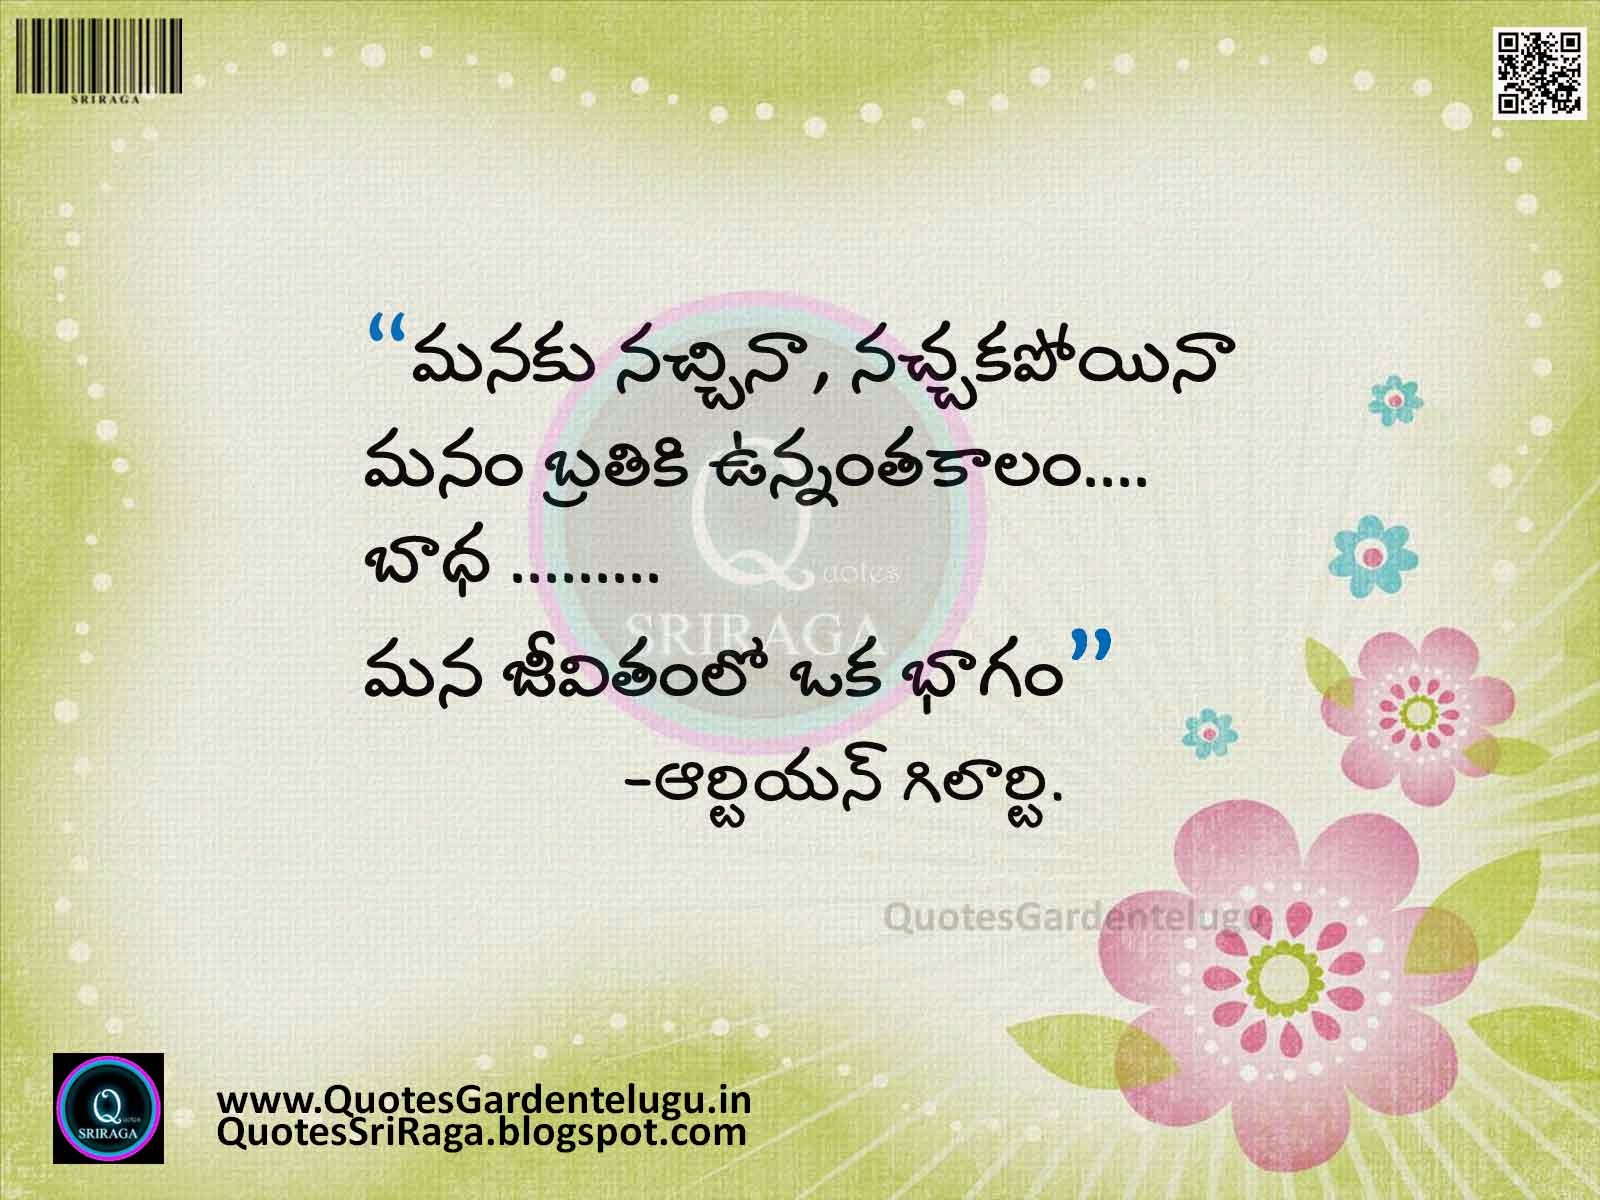 Telugu Good Reads Best Telugu Inspirational Quotes with HDwallpapers Famous Telugu Motivational Quotes images